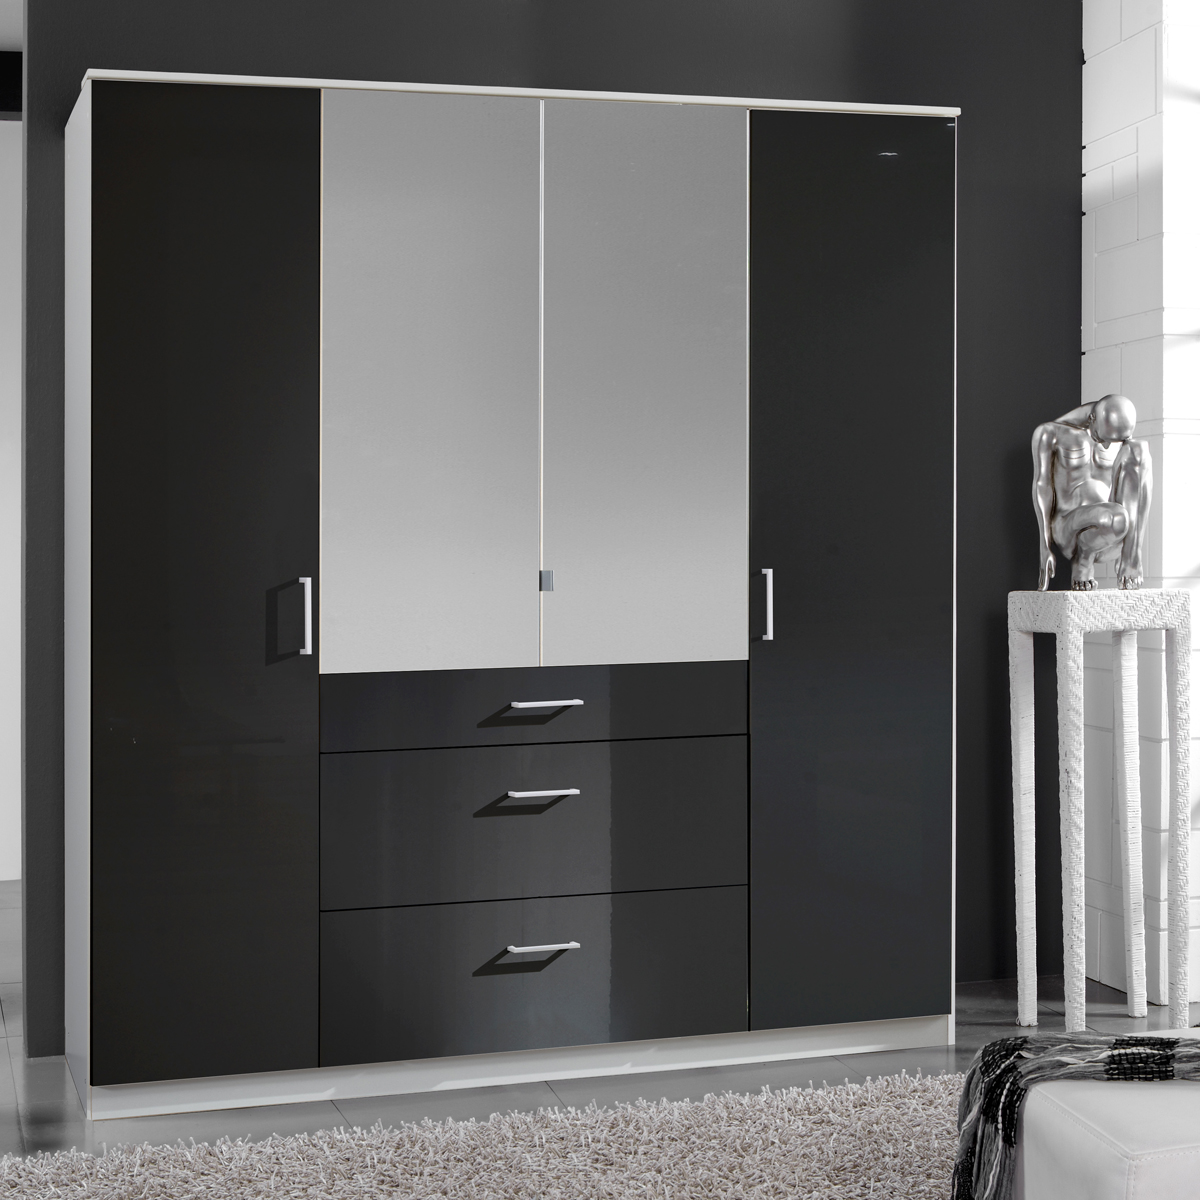 kleiderschrank clack dreht renschrank hochglanz schwarz alpinwei spiegel 180 cm ebay. Black Bedroom Furniture Sets. Home Design Ideas